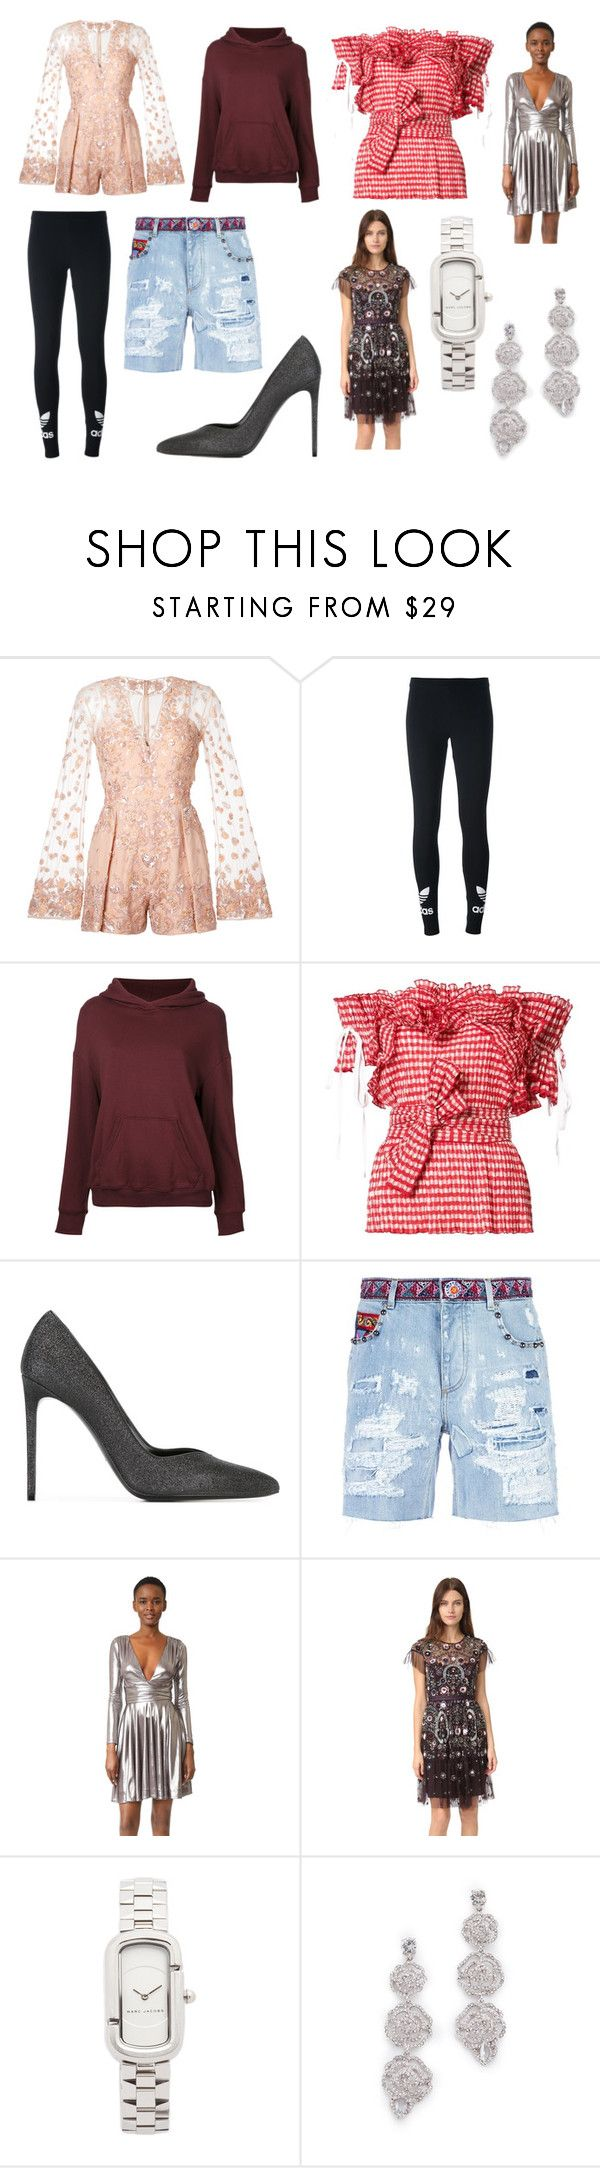 """Hello Fashion"" by donna-wang1 ❤ liked on Polyvore featuring Zuhair Murad, adidas Originals, CITYSHOP, Rosie Assoulin, Yves Saint Laurent, Dolce&Gabbana, Halston Heritage, Needle & Thread, Marc Jacobs and Kate Spade"